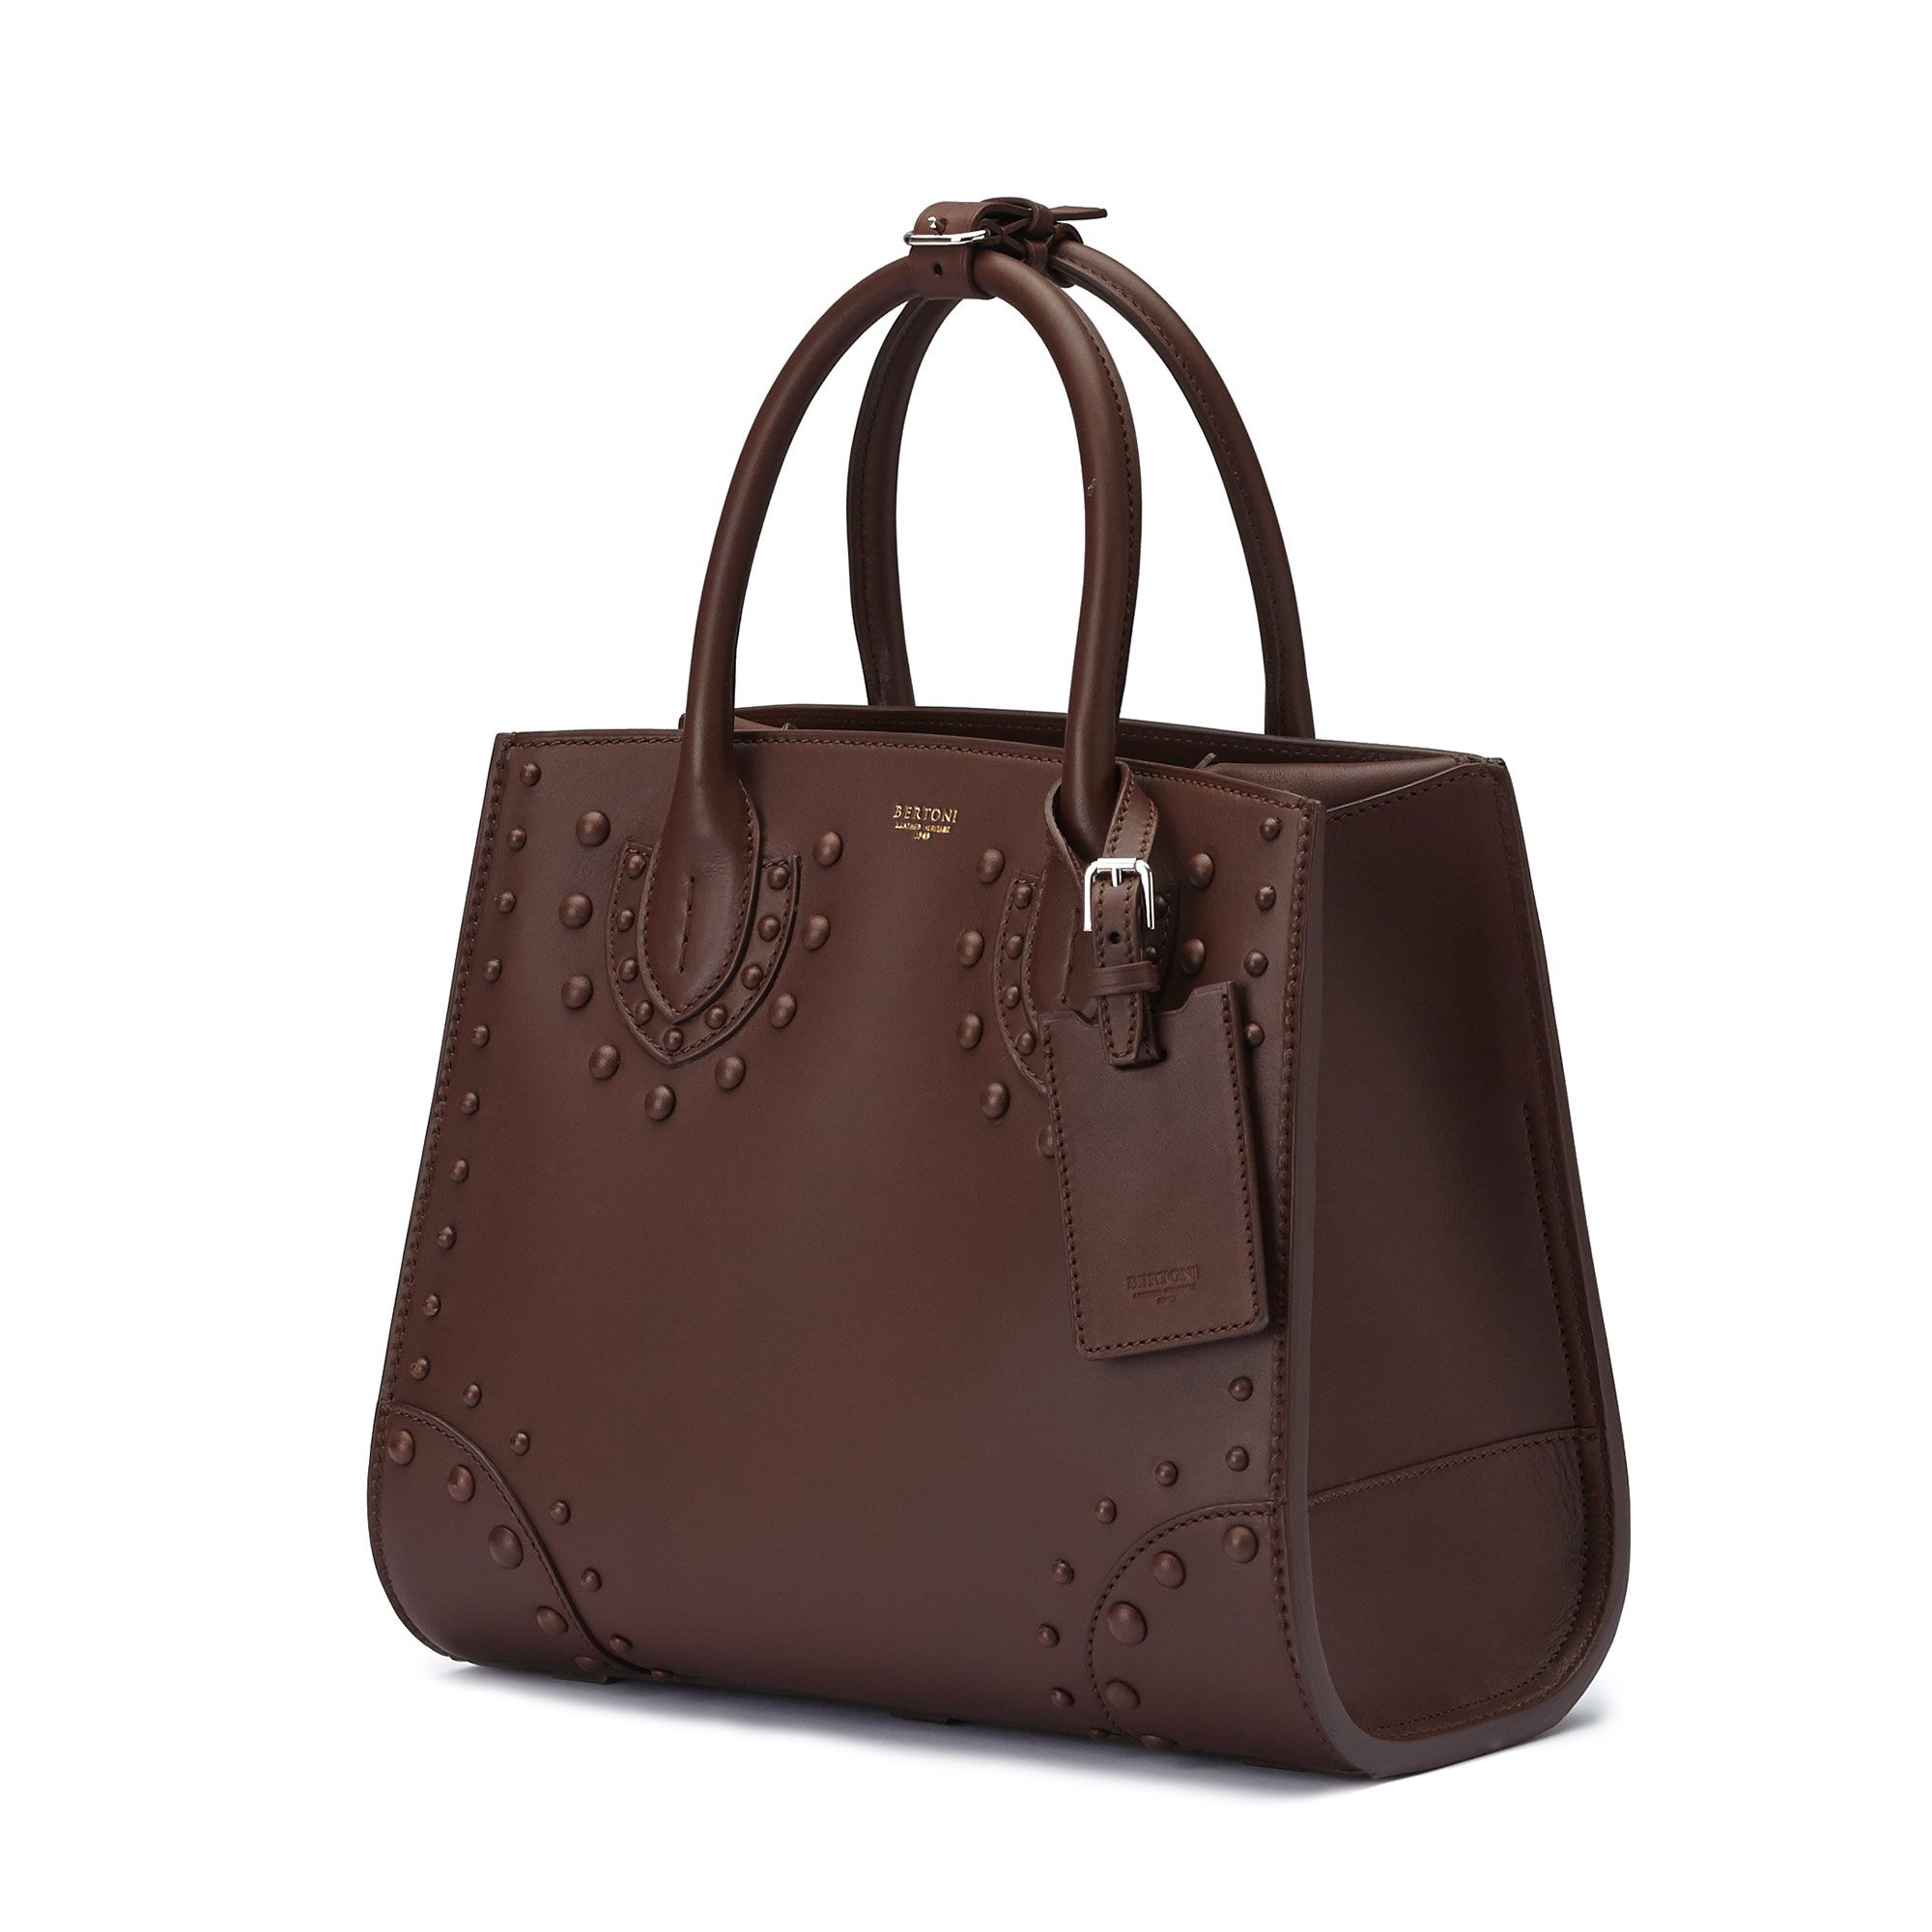 The brown french calf Darcy medium bag by Bertoni 1949 03